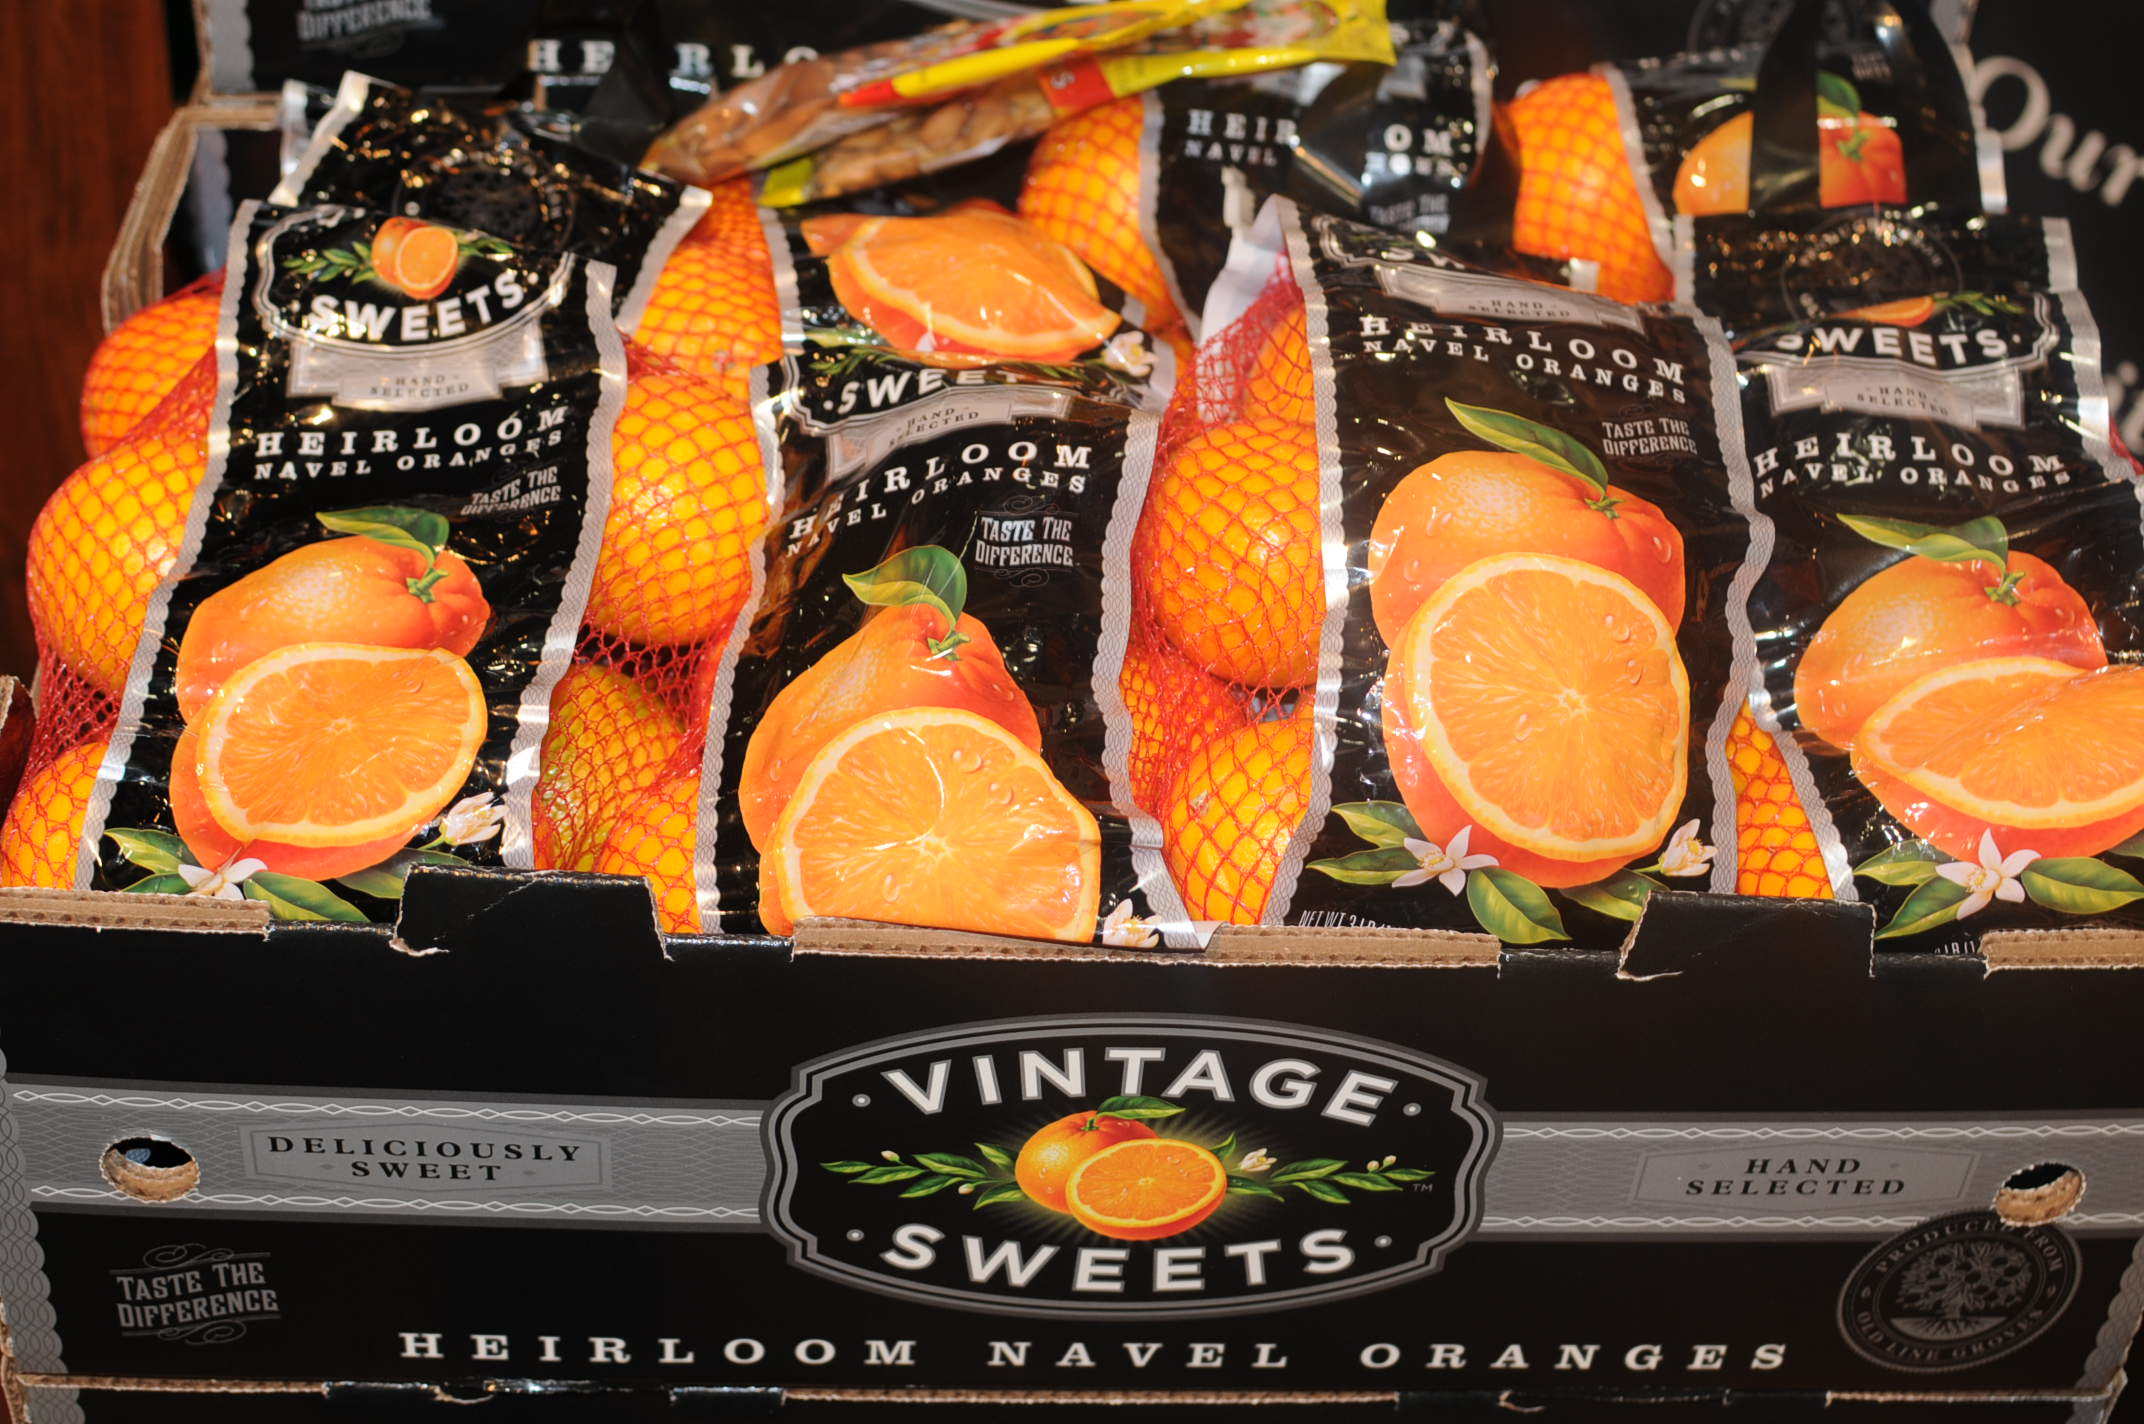 Expanding the Cuties® line, introducing new Vintage Sweet™ heirloom navel oranges and capturing significant kiwi market share with Mighties™ are some of the major successes of which Sun Pacific is proud.